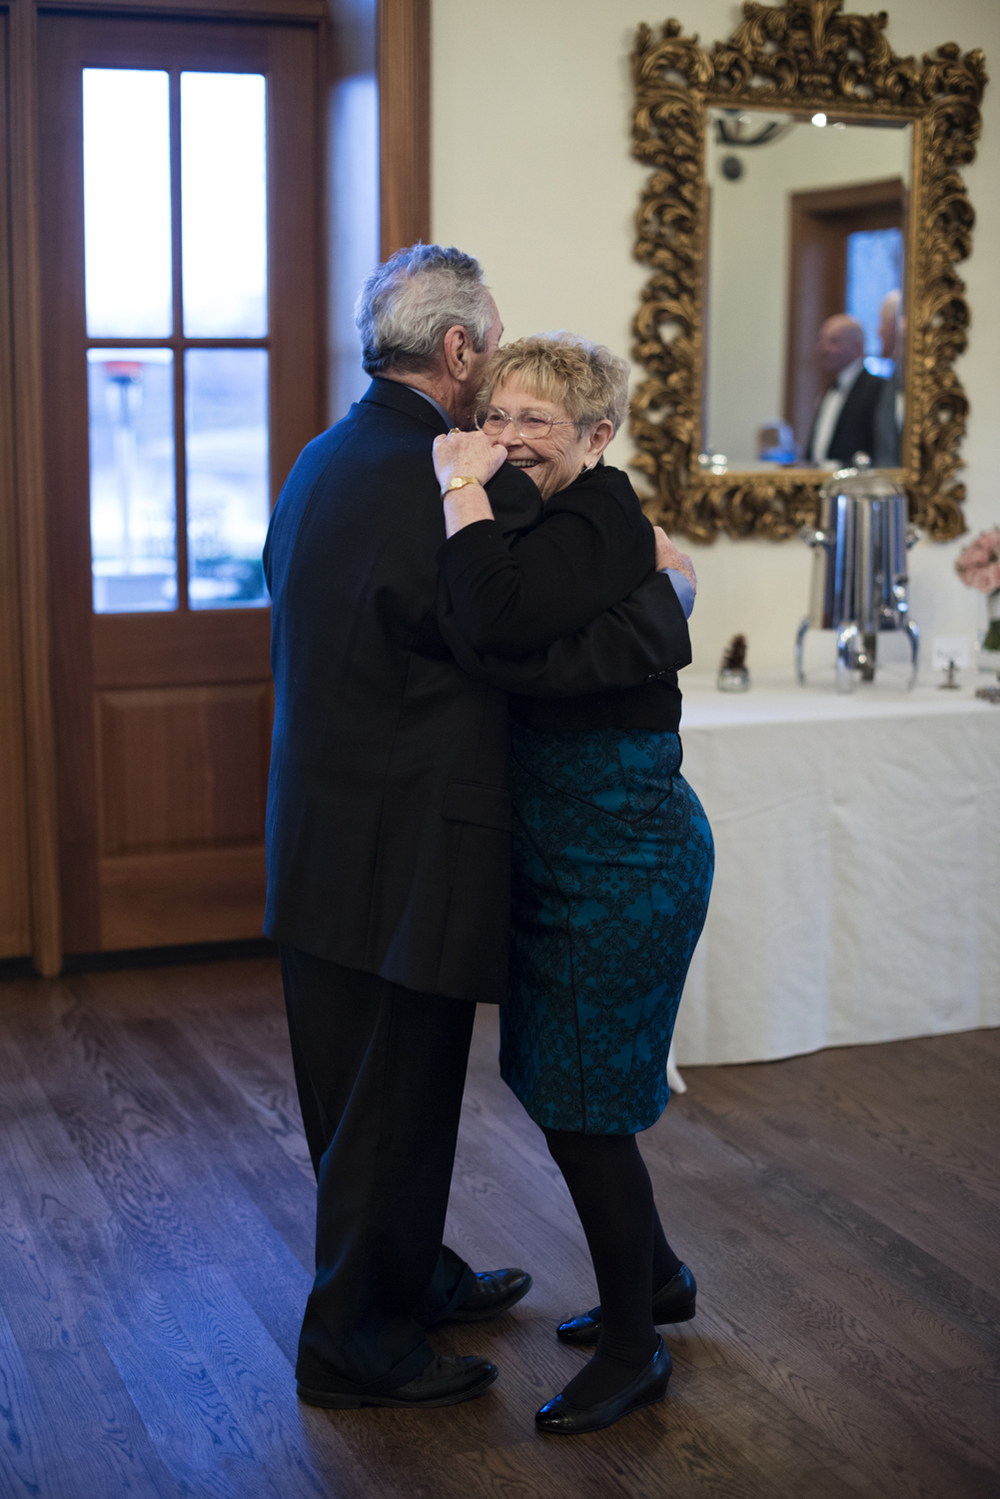 Longest married couple on the dance floor at a wedding